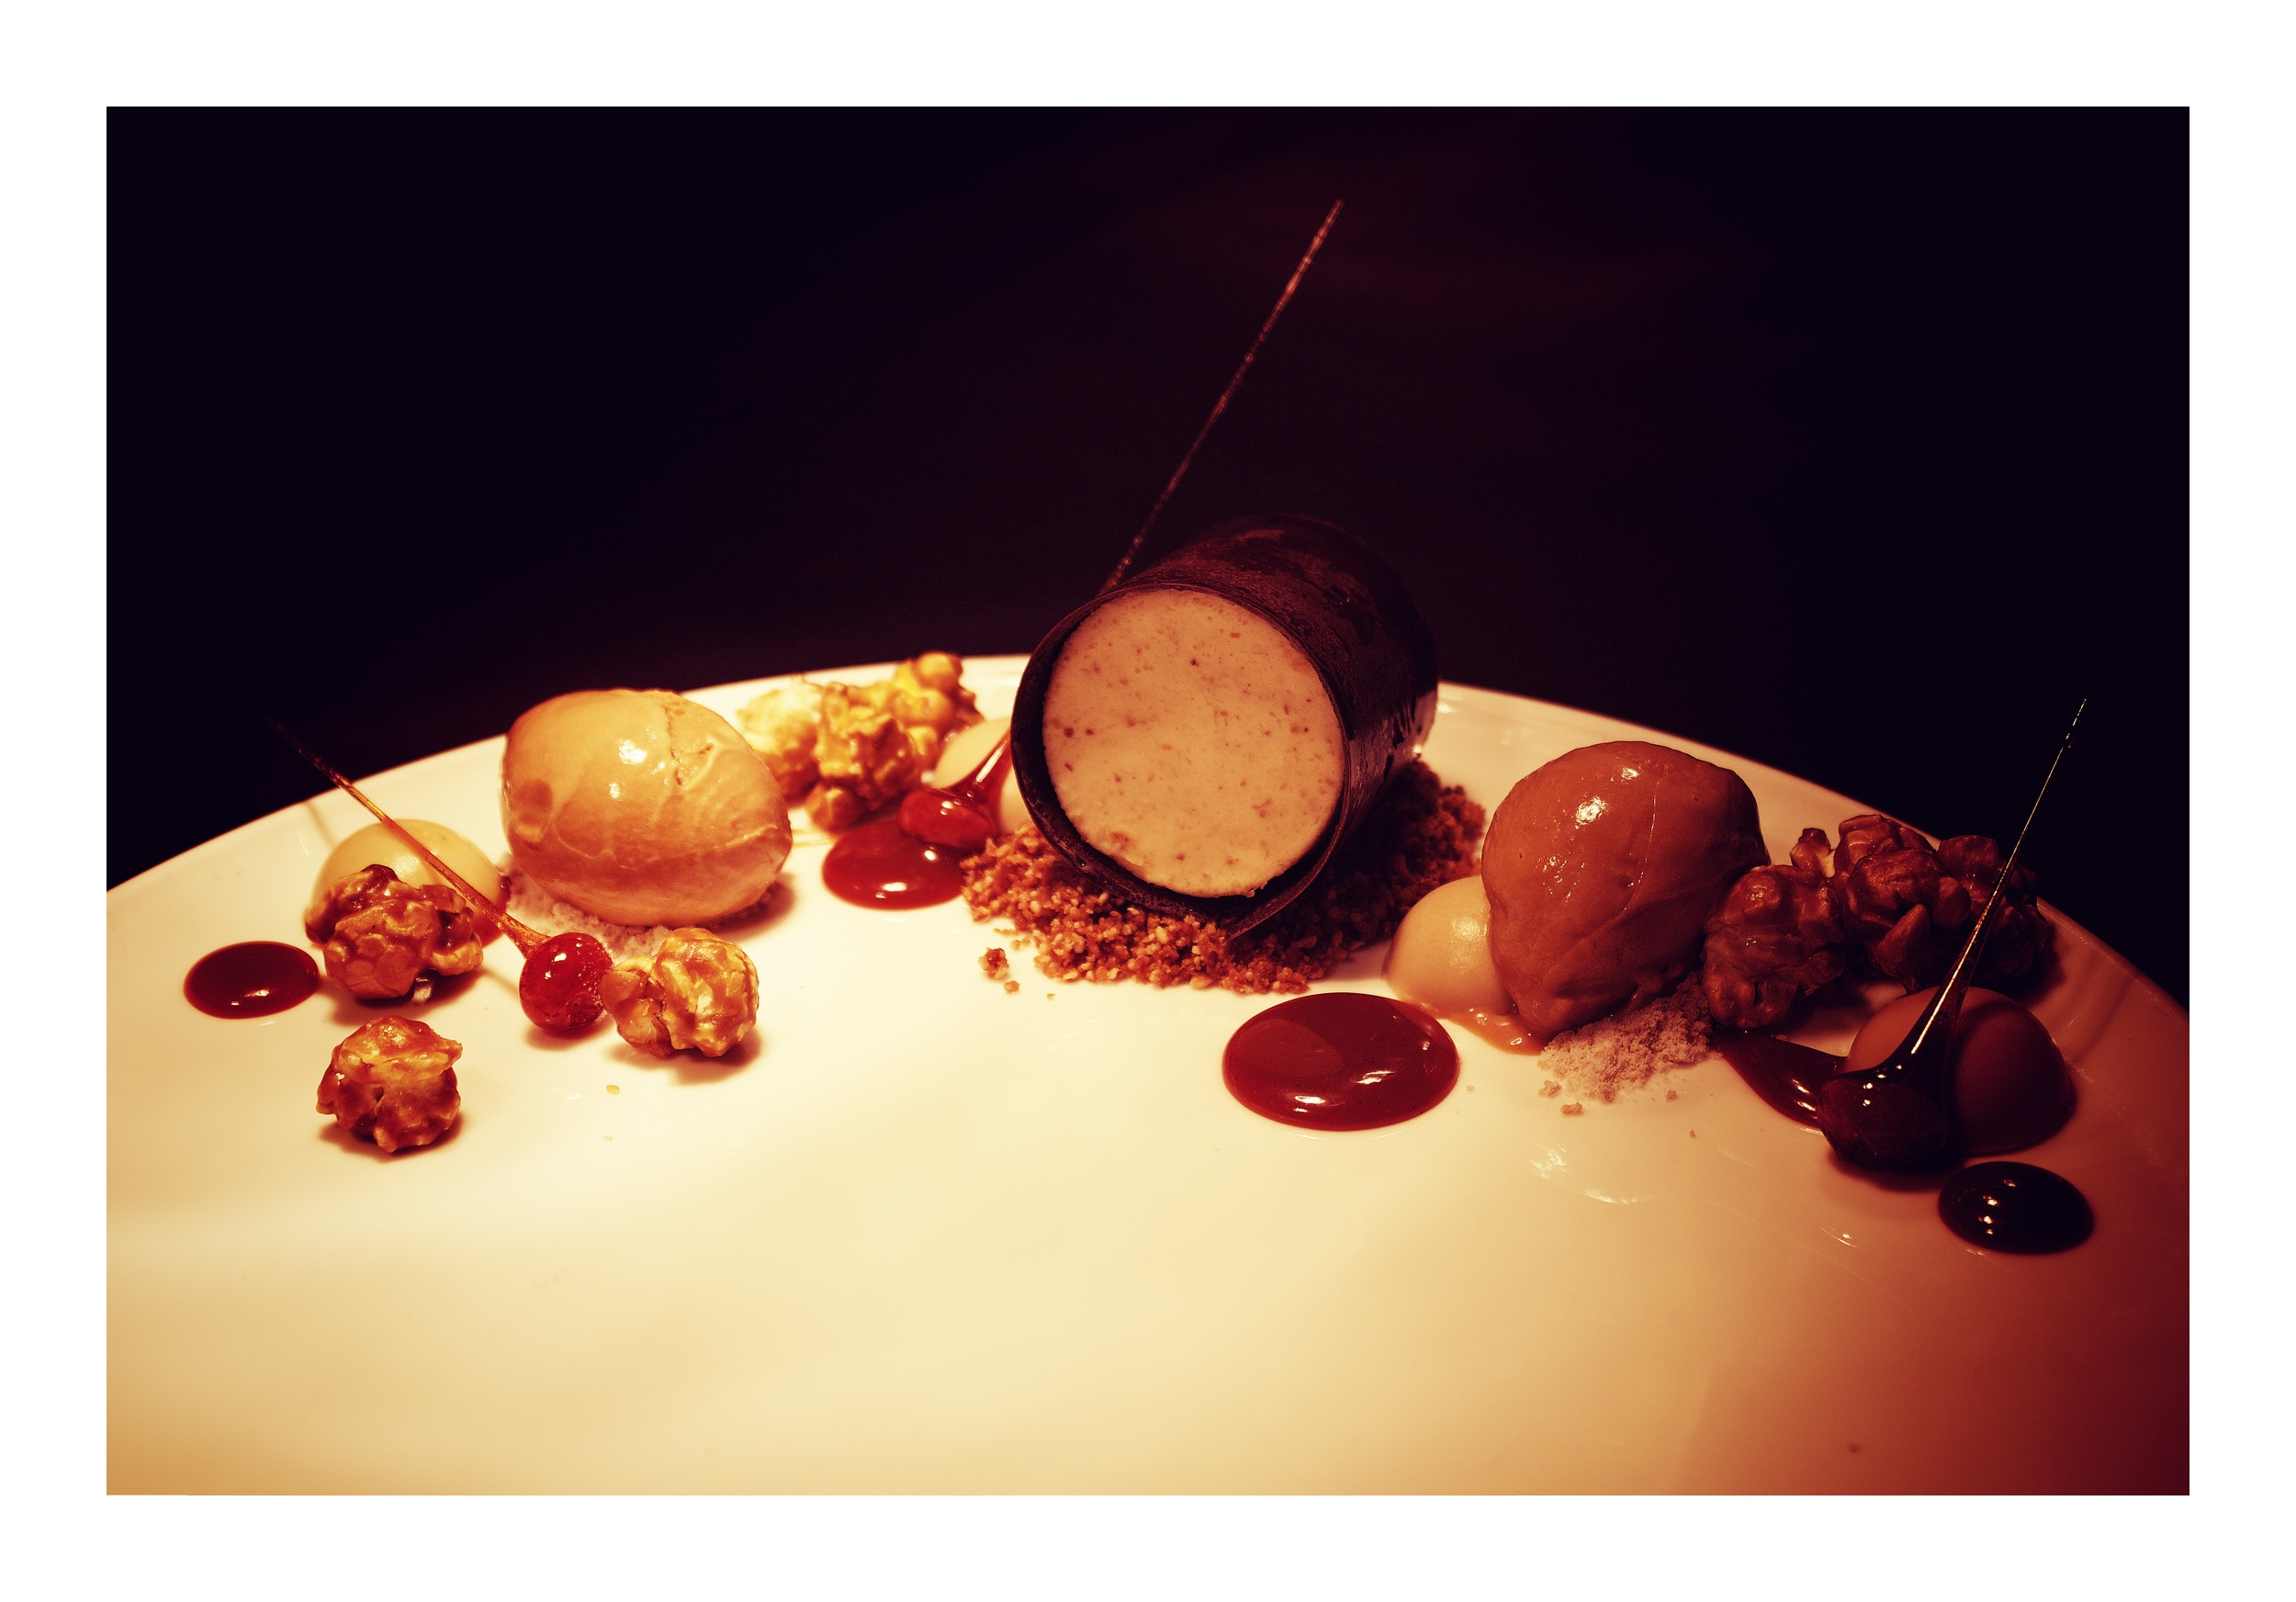 peanut cake|salted caramel cremeaux|peanut mousse|caramel powder|sweet corn gelato|peanut encapsulated in sugar